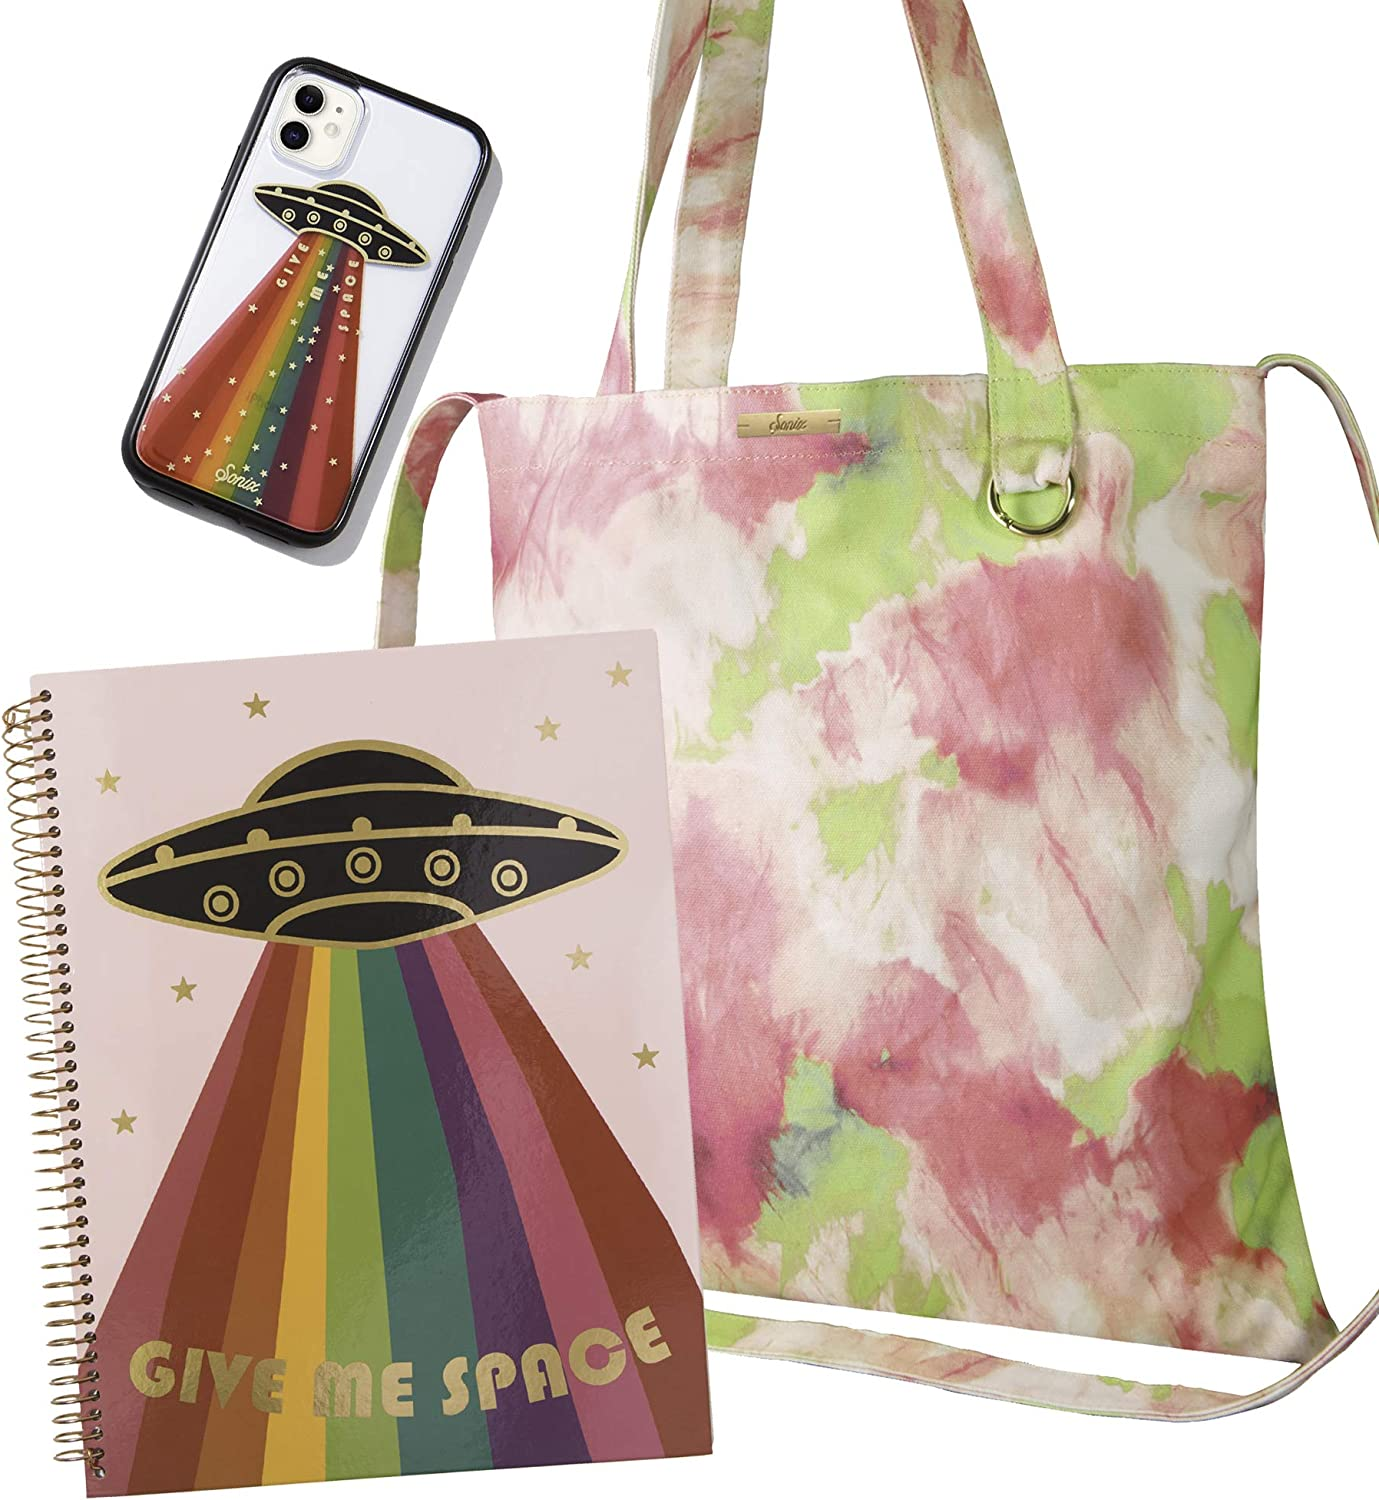 Sonix Give Me Space Book Bag Bundle - iPhone 11 Case + Spiral Notebook + Tie-Dye Tote